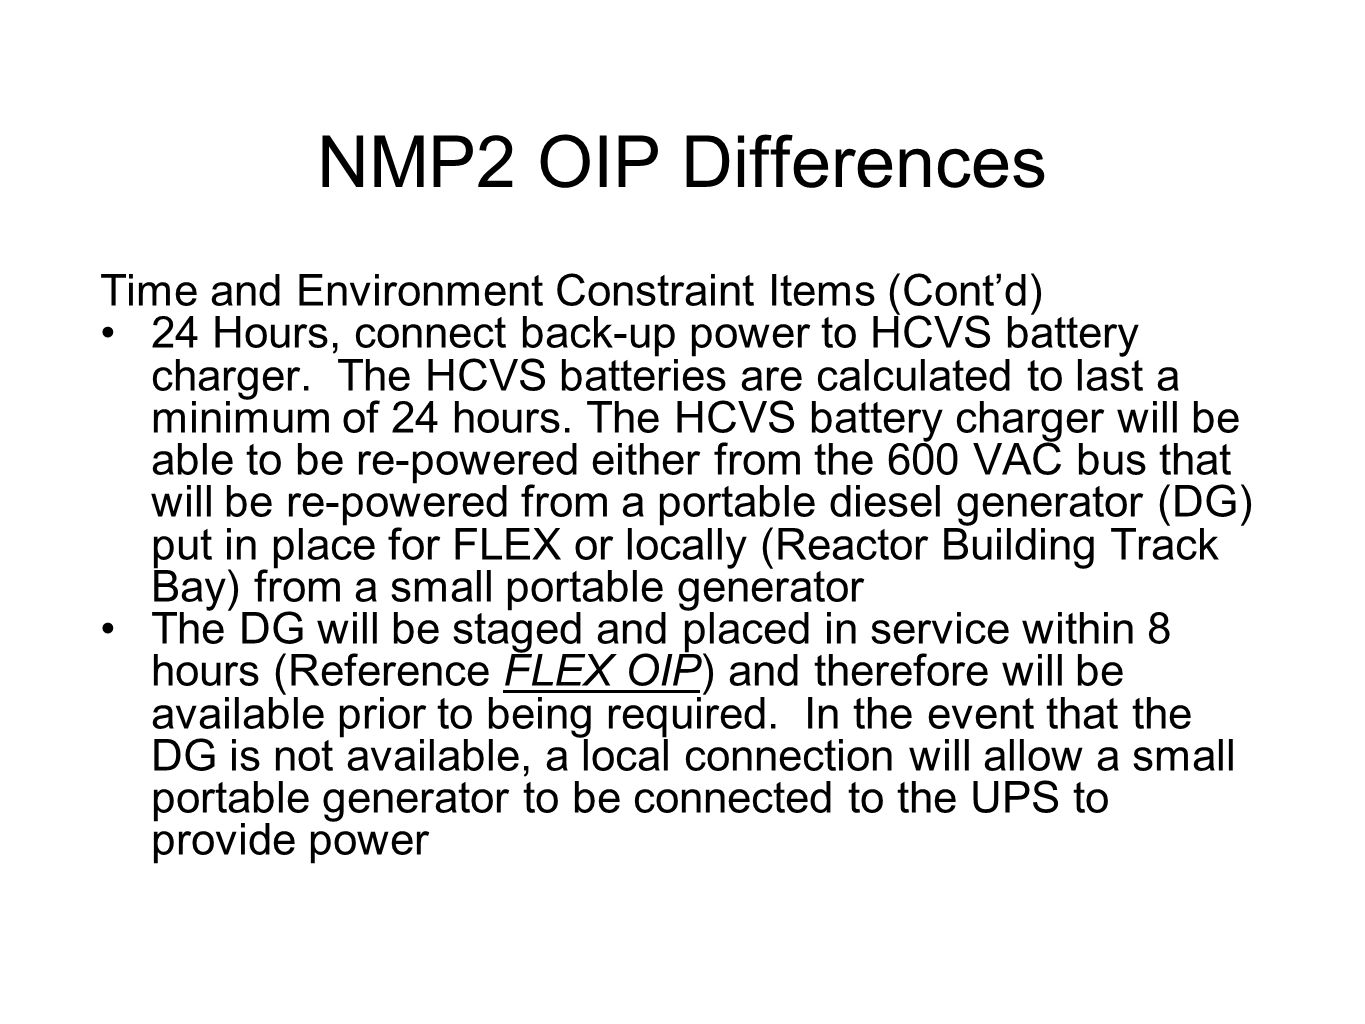 NMP2 OIP Differences Time and Environment Constraint Items (Cont'd)